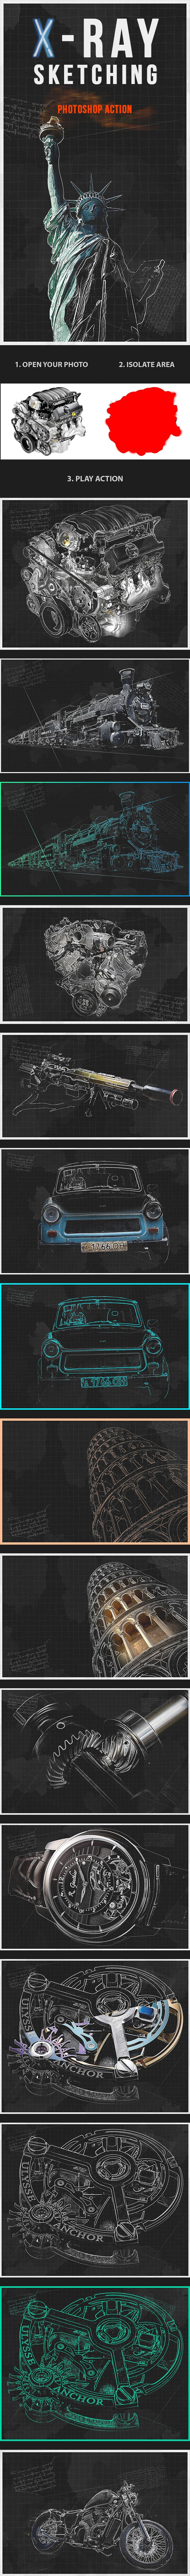 X-Ray Sketching - Photo Effects Actions